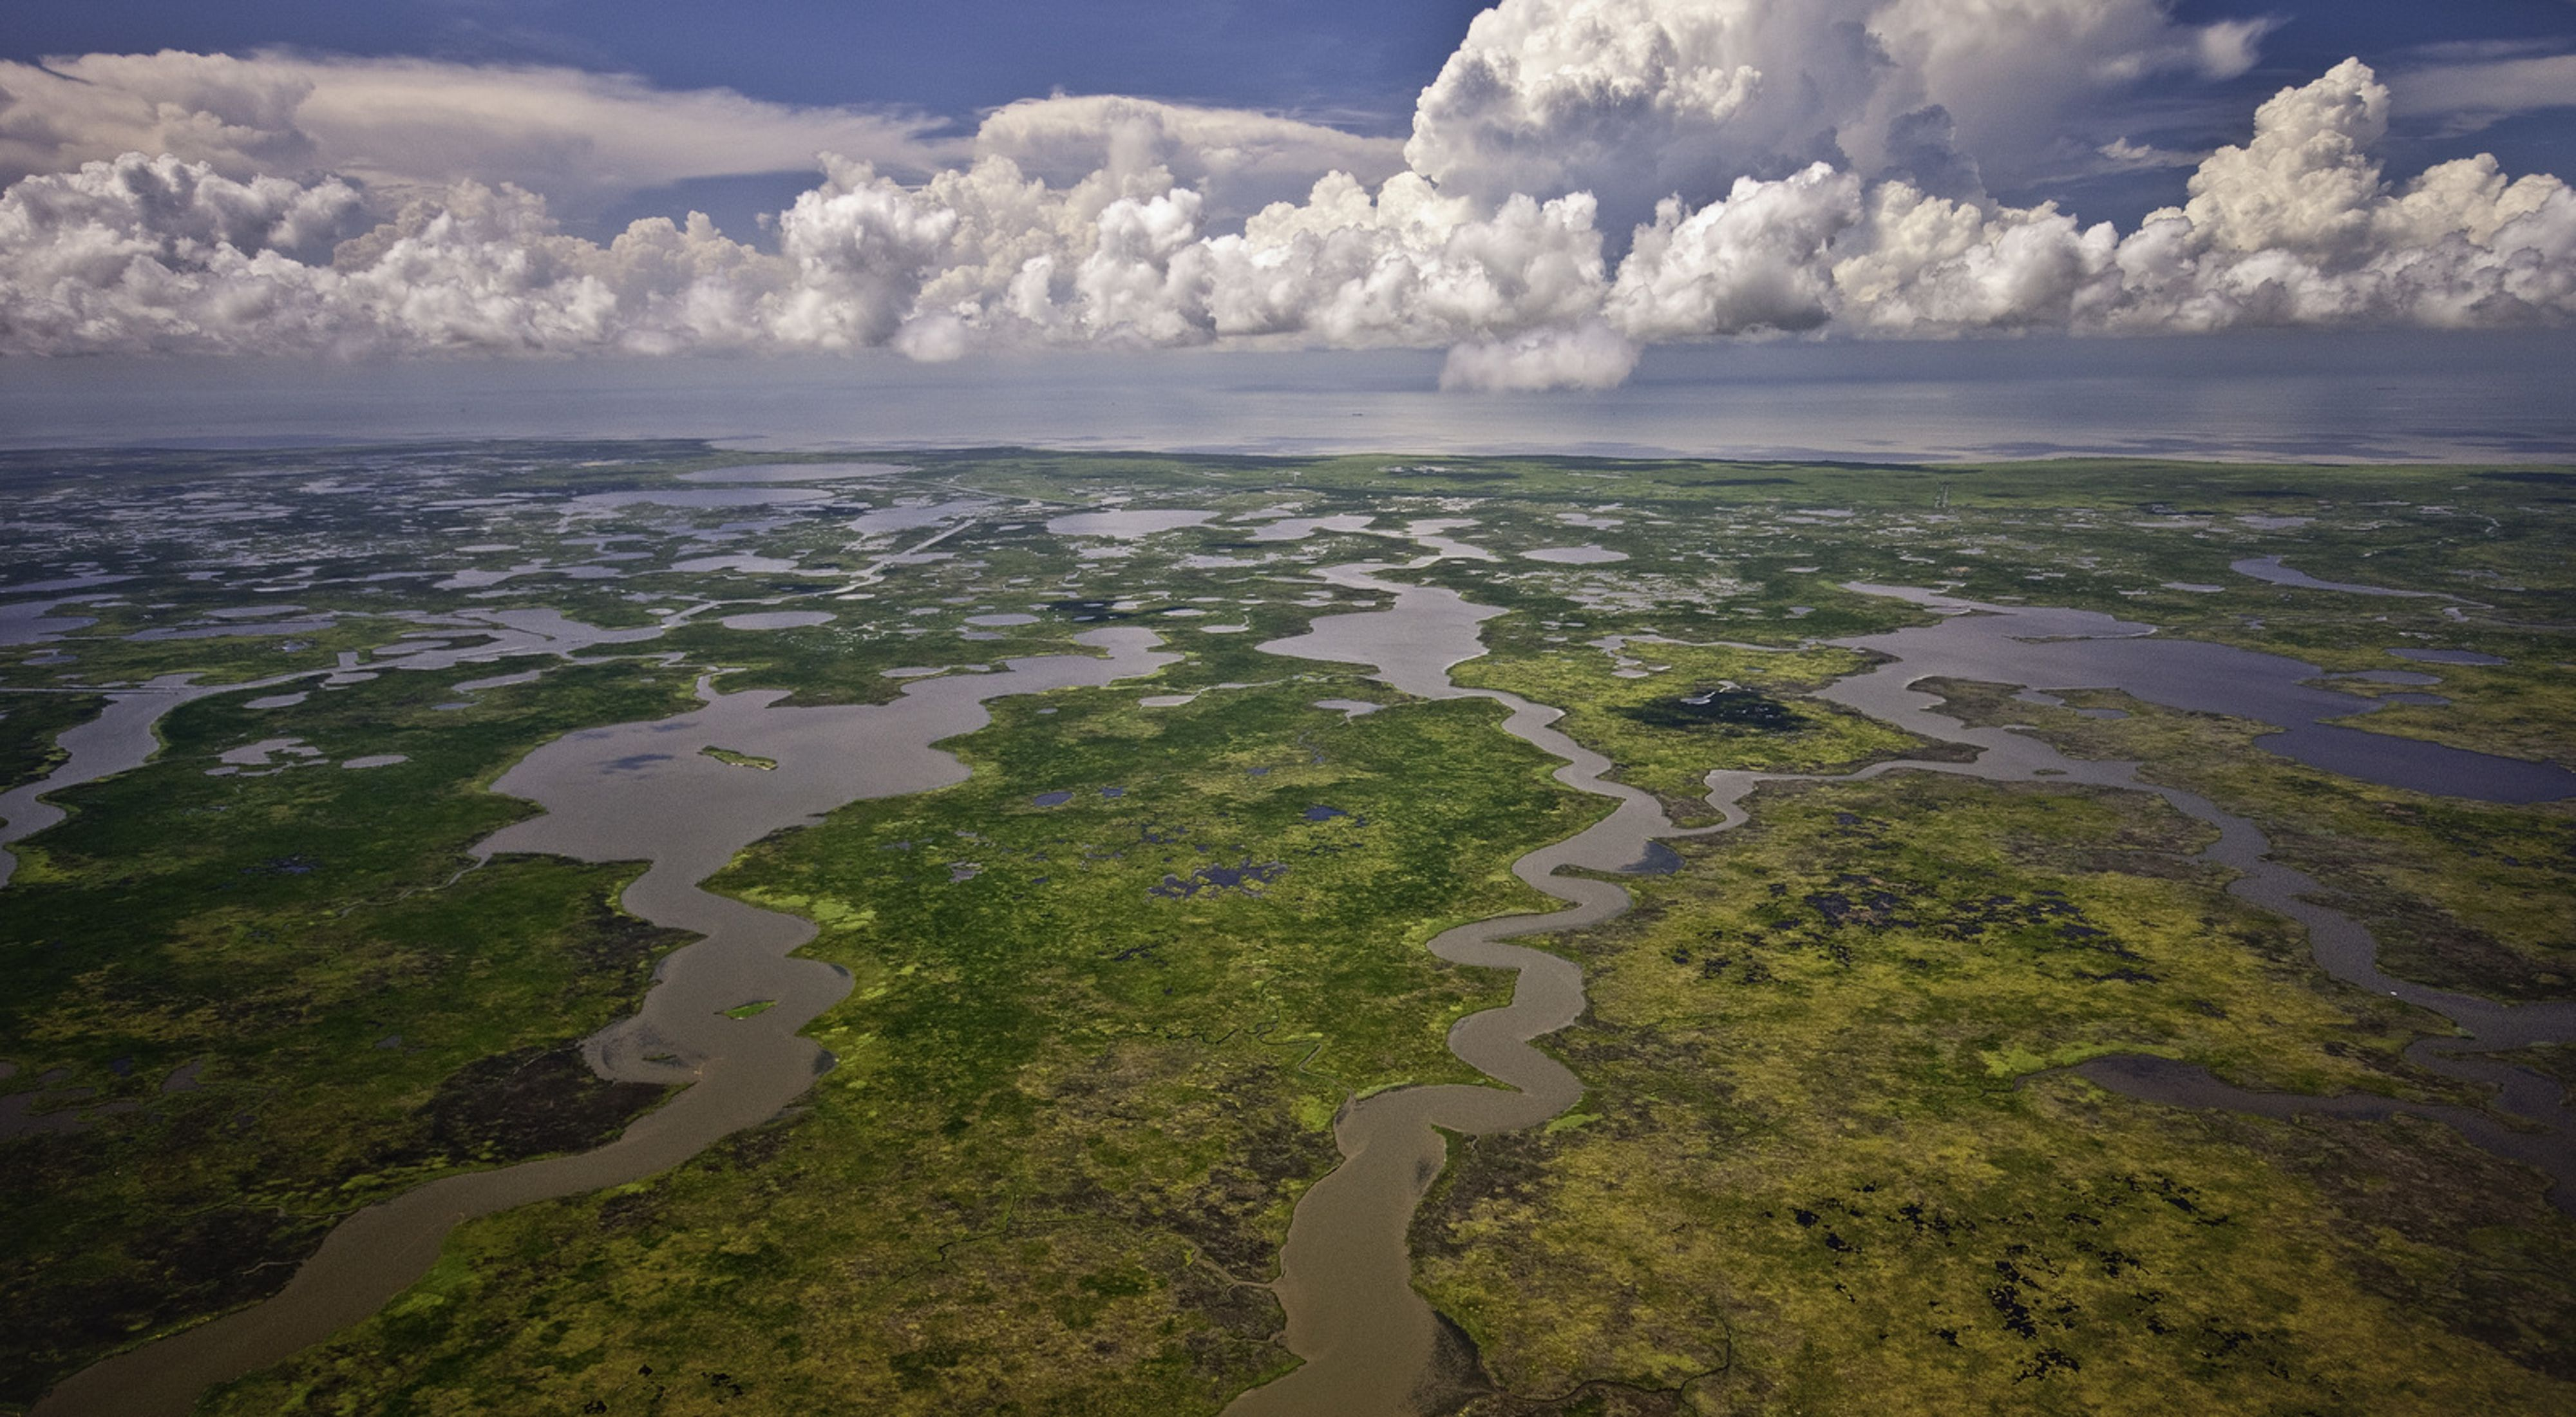 Aerial view of wetlands and marshlands that comprise the Mississippi River delta on the Louisiana, Gulf Coast.